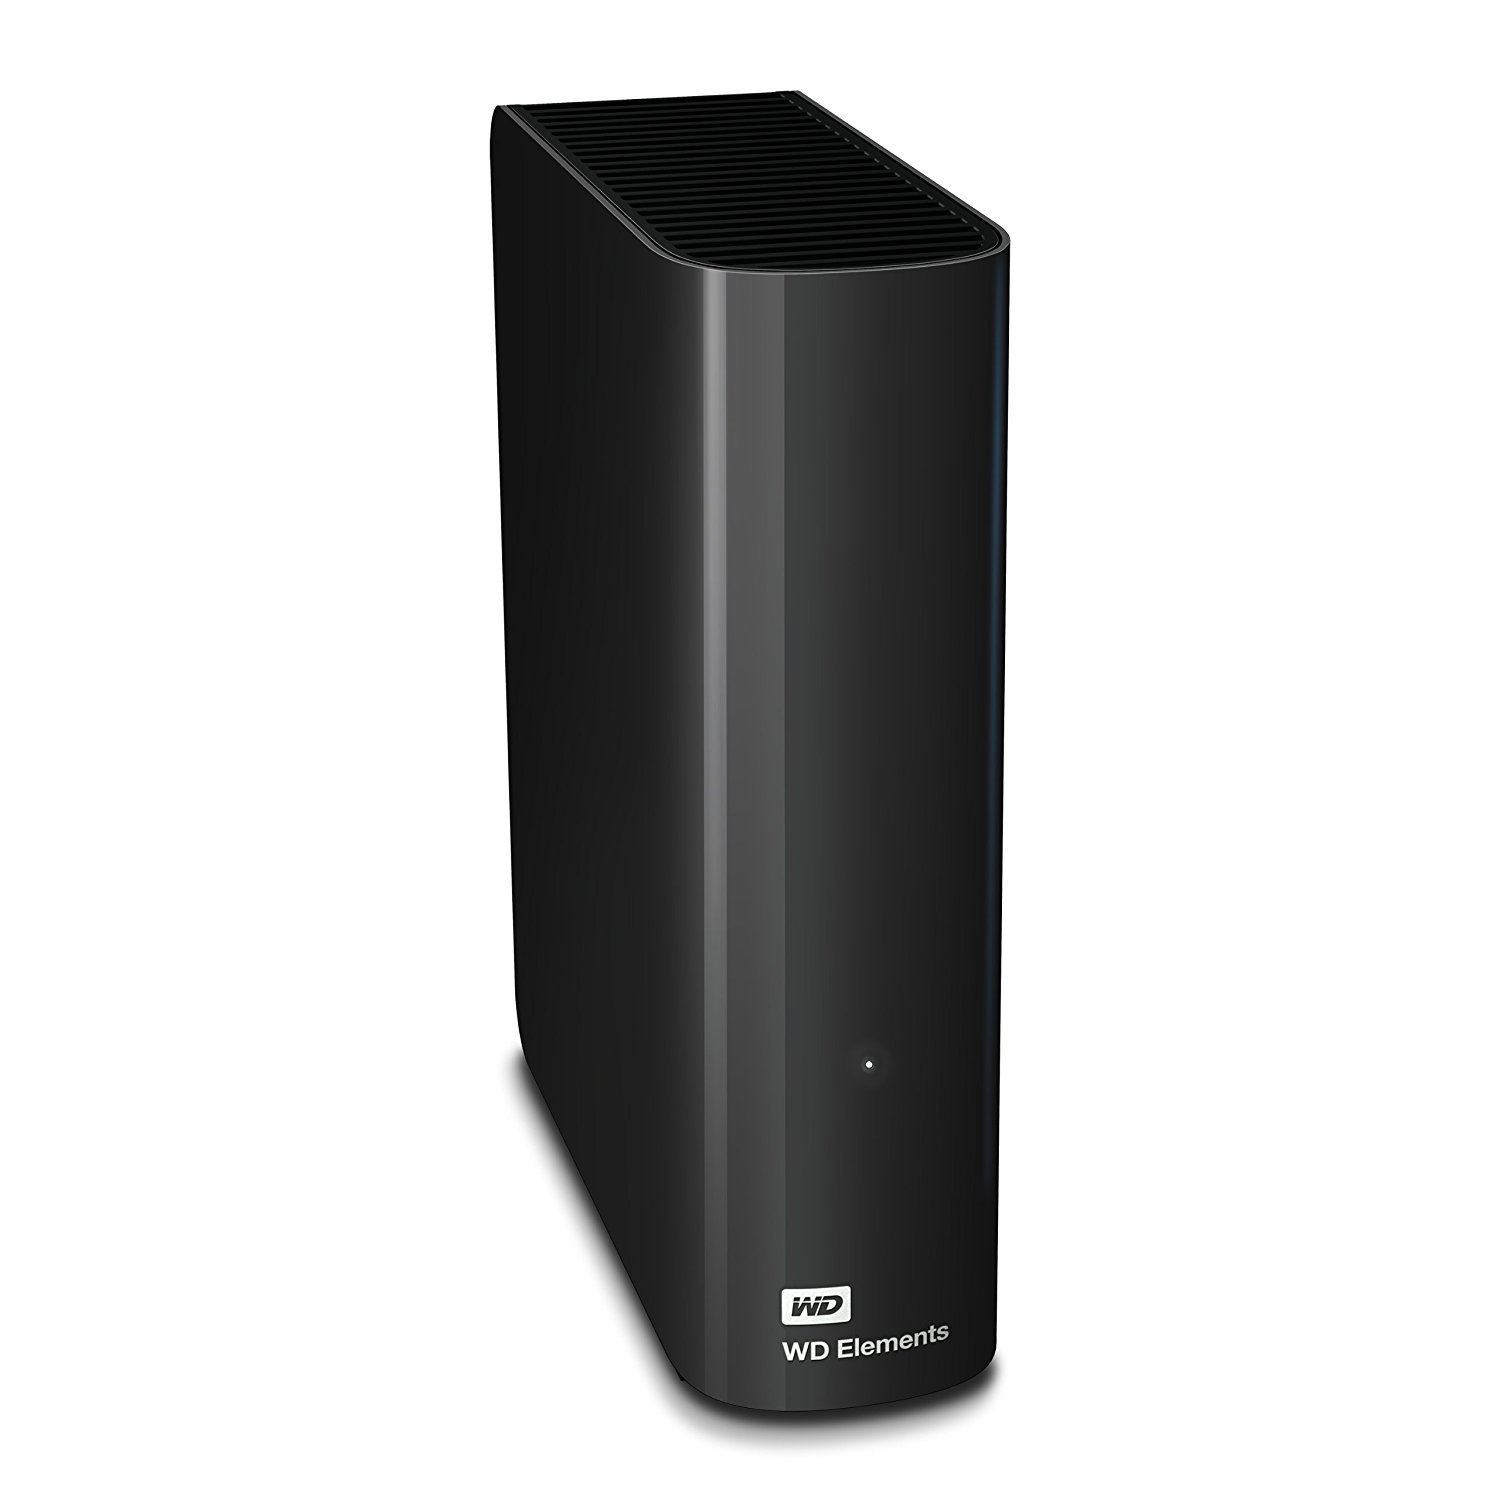 Western Digital USB Festplatte amazon